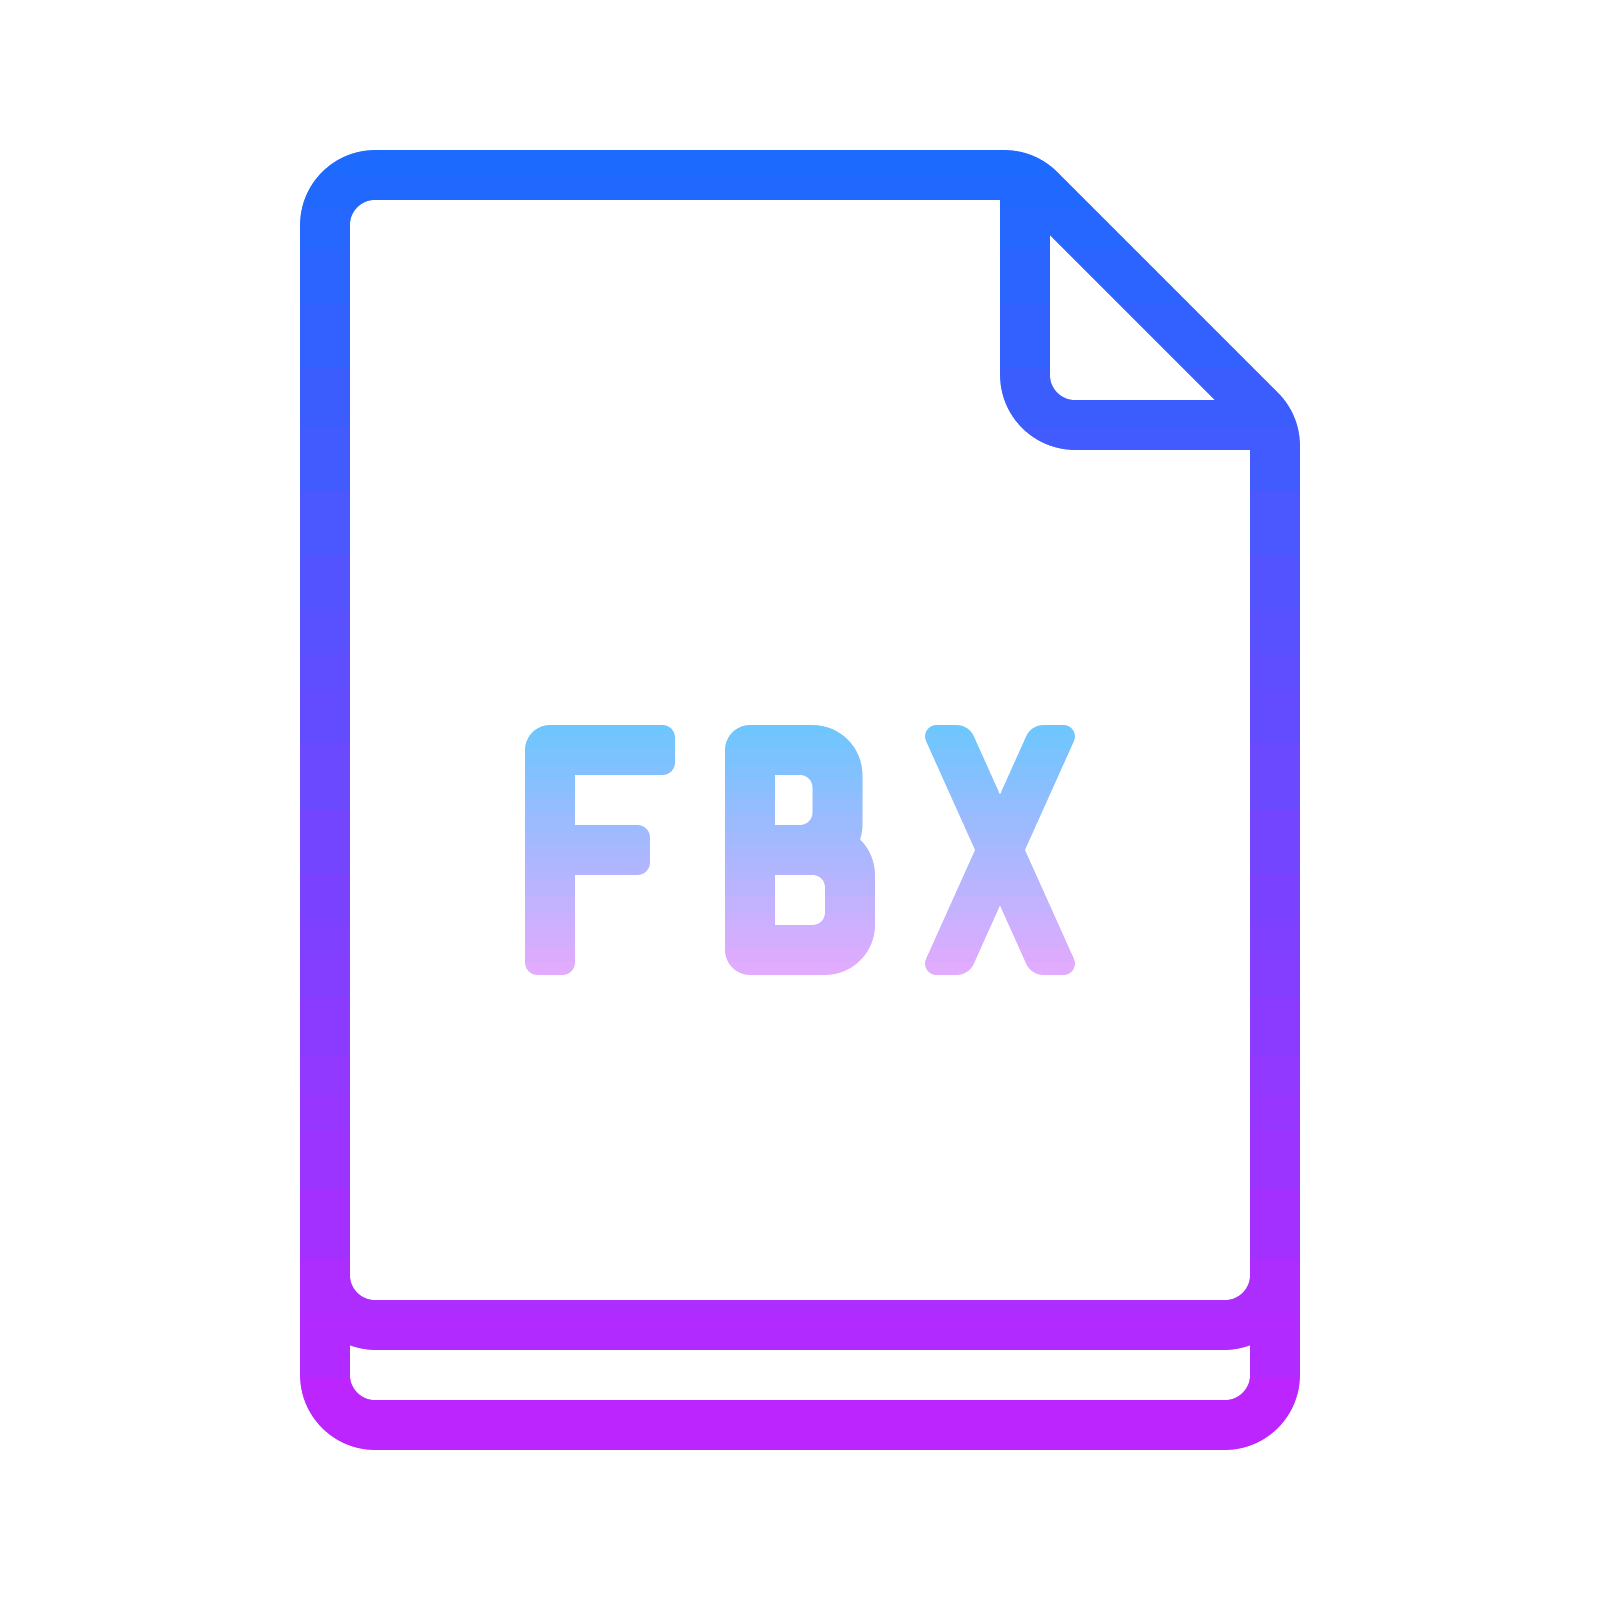 Fbx icon free download. Resize png files